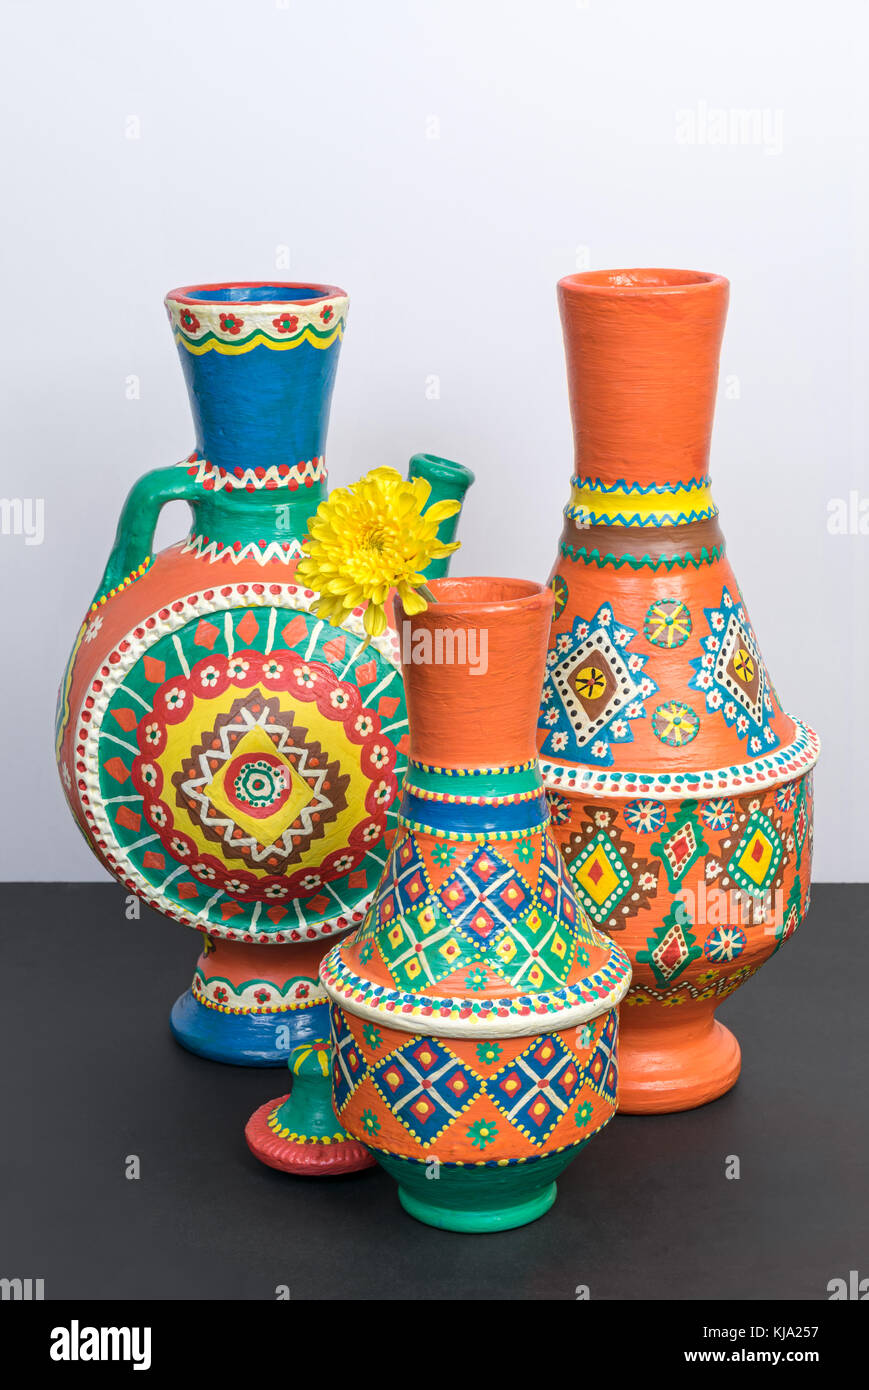 Studio shot of still life of three orange ornate pottery vases on background of black table and white wall - Stock Image